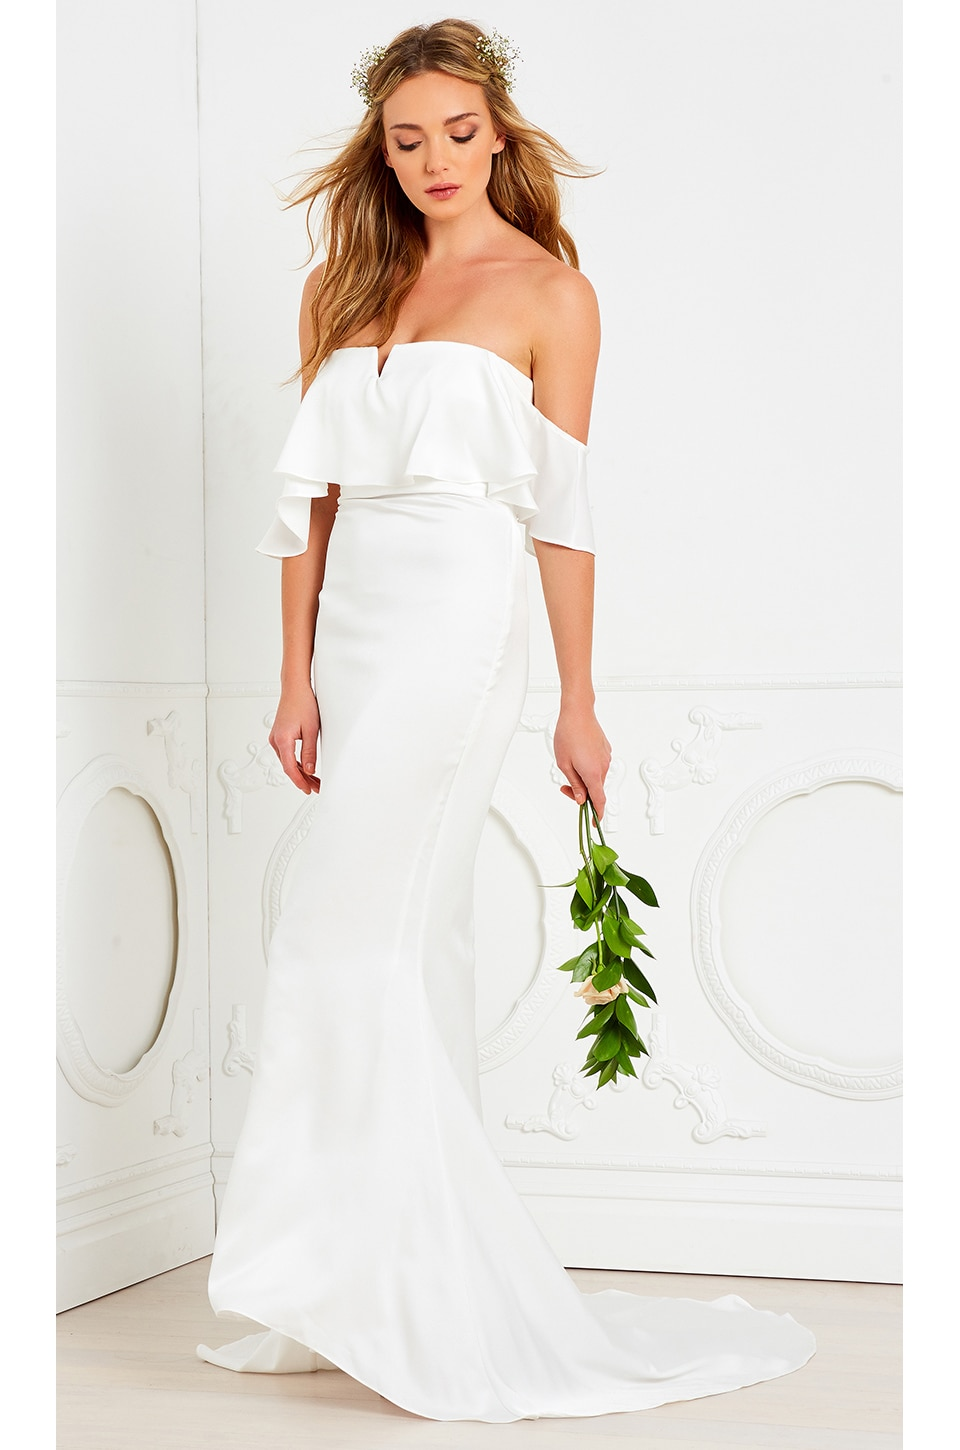 Trendy Wedding Dresses under $500 - THE FRESHEST BRIDES